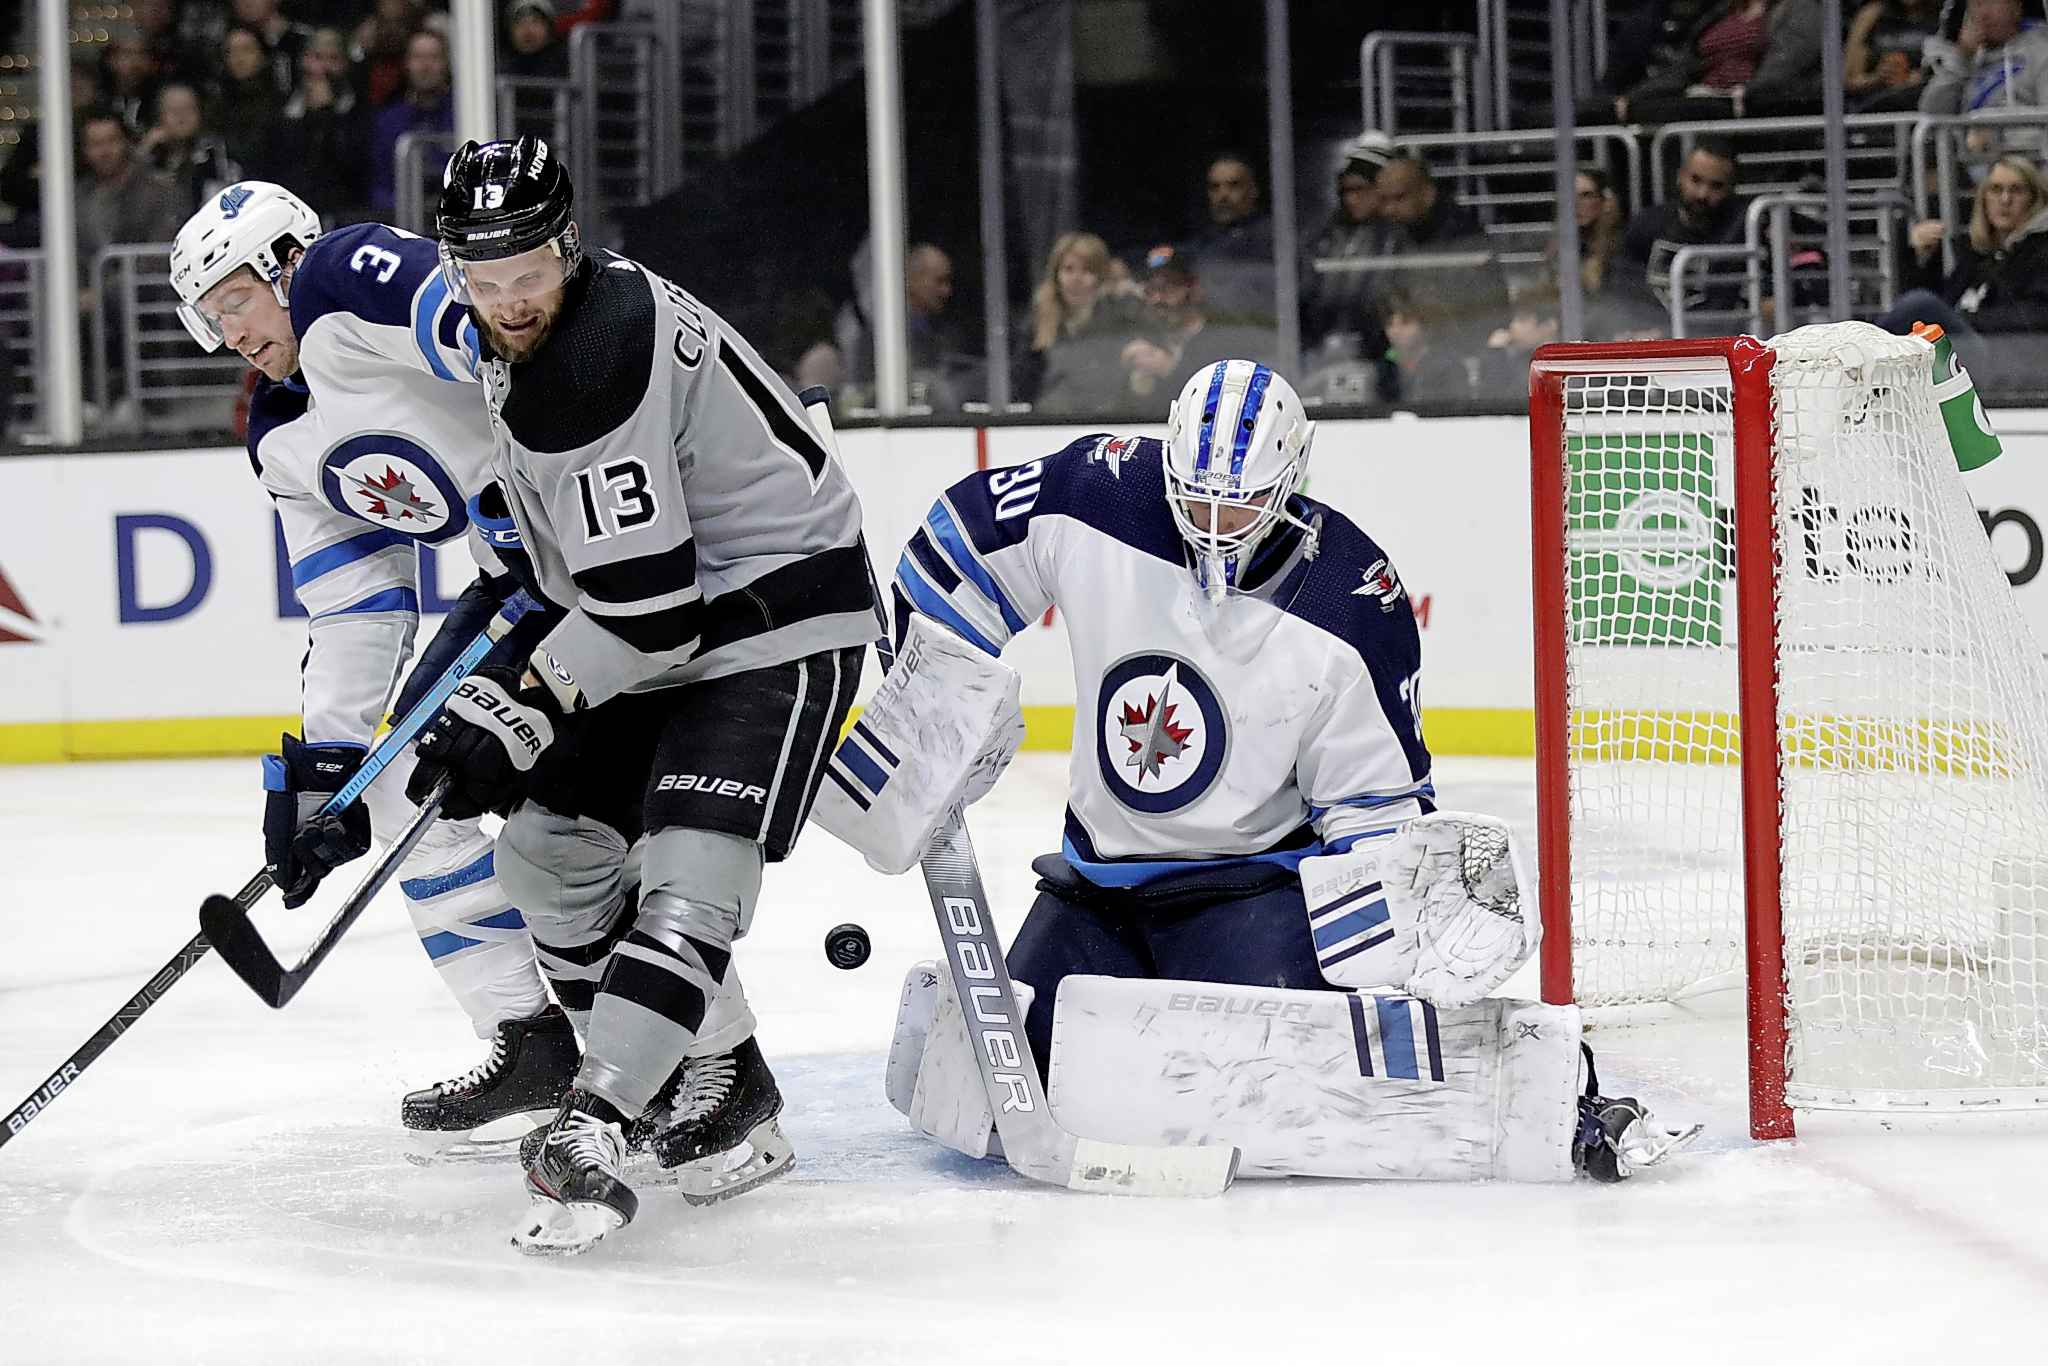 The puck bounces in front of the goal between Winnipeg Jets' Tucker Poolman, left, Los Angeles Kings' Kyle Clifford (13) and Jets goaltender Laurent Brossoit during the second period of the November 30 game in Los Angeles. (Marcio Jose Sanchez / AP Photo)